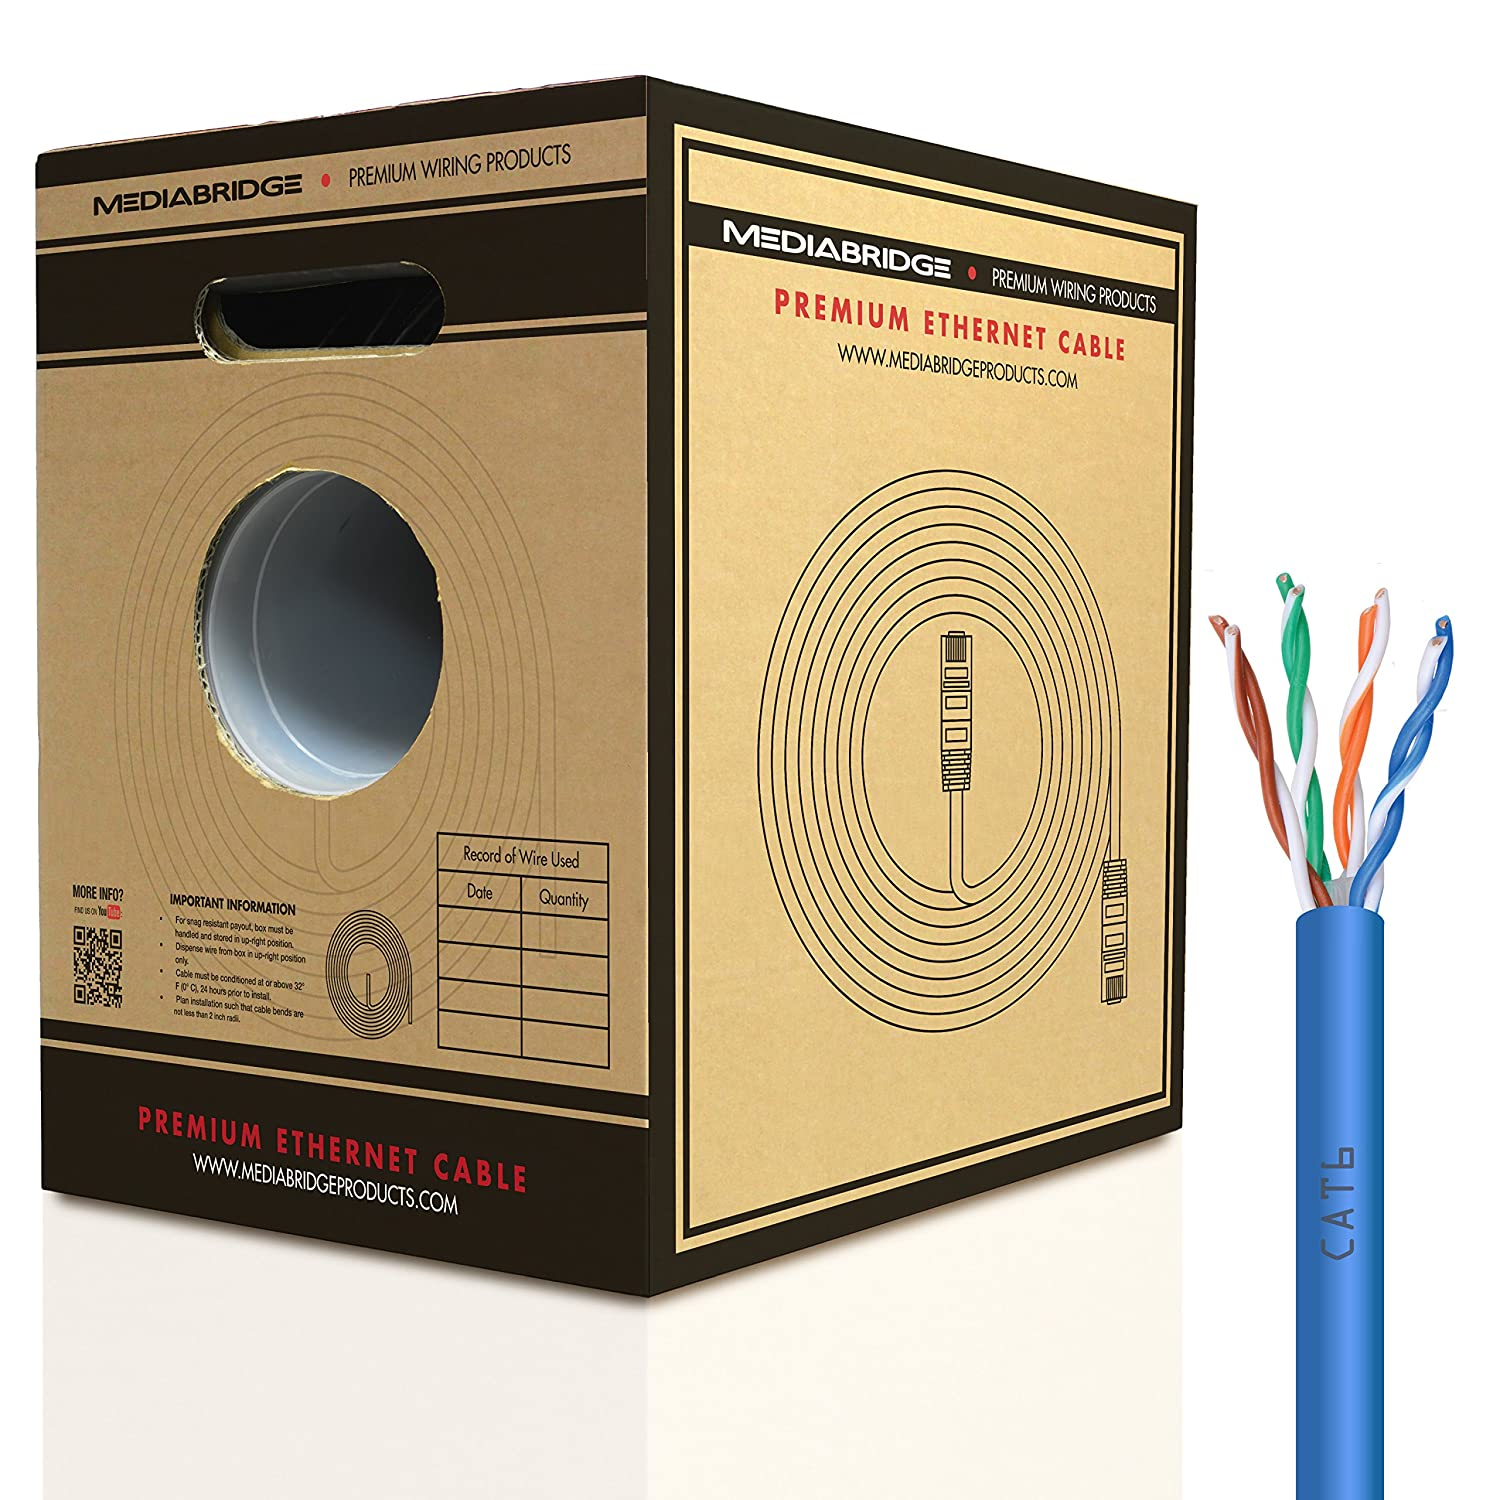 Mediabridge Pure Copper Cat6 Cable 500 Feet Blue Wiring Ethernet 10gbps Solid In Wall Rated W Premium Snagless Pull Out Box Part